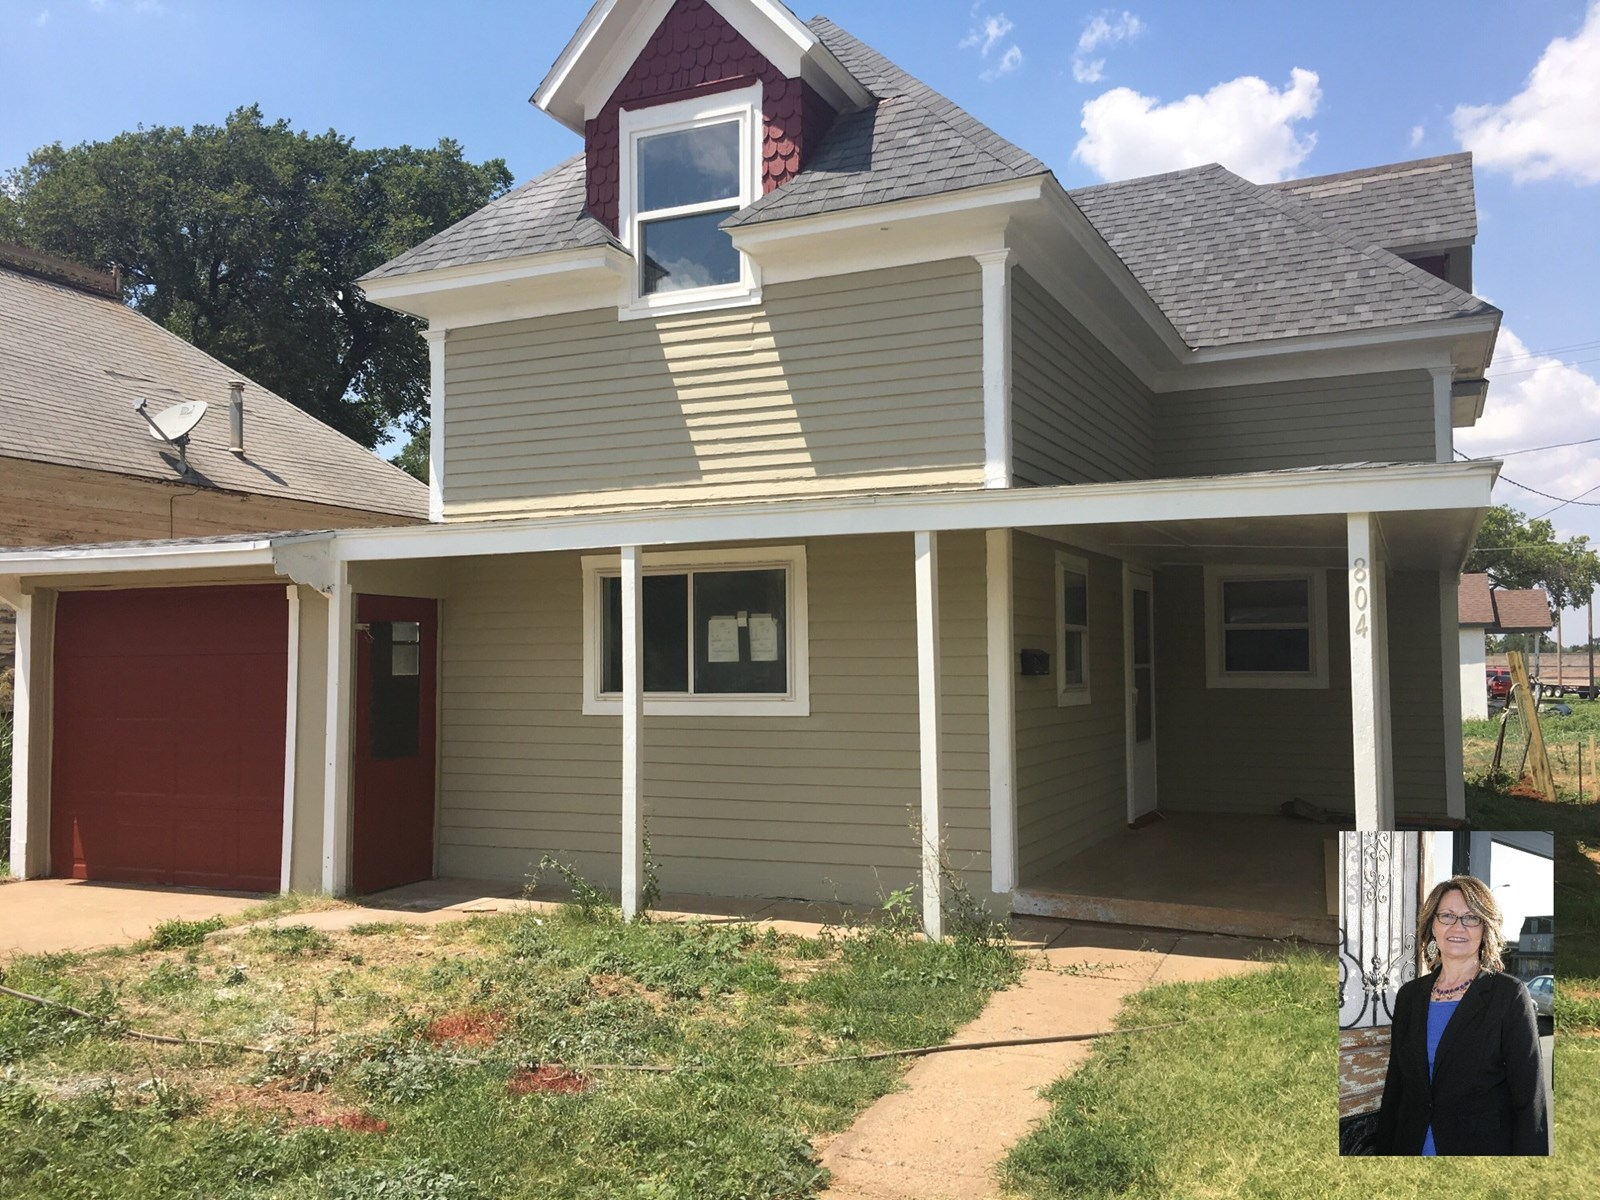 Home for Sale in Alva, OK!